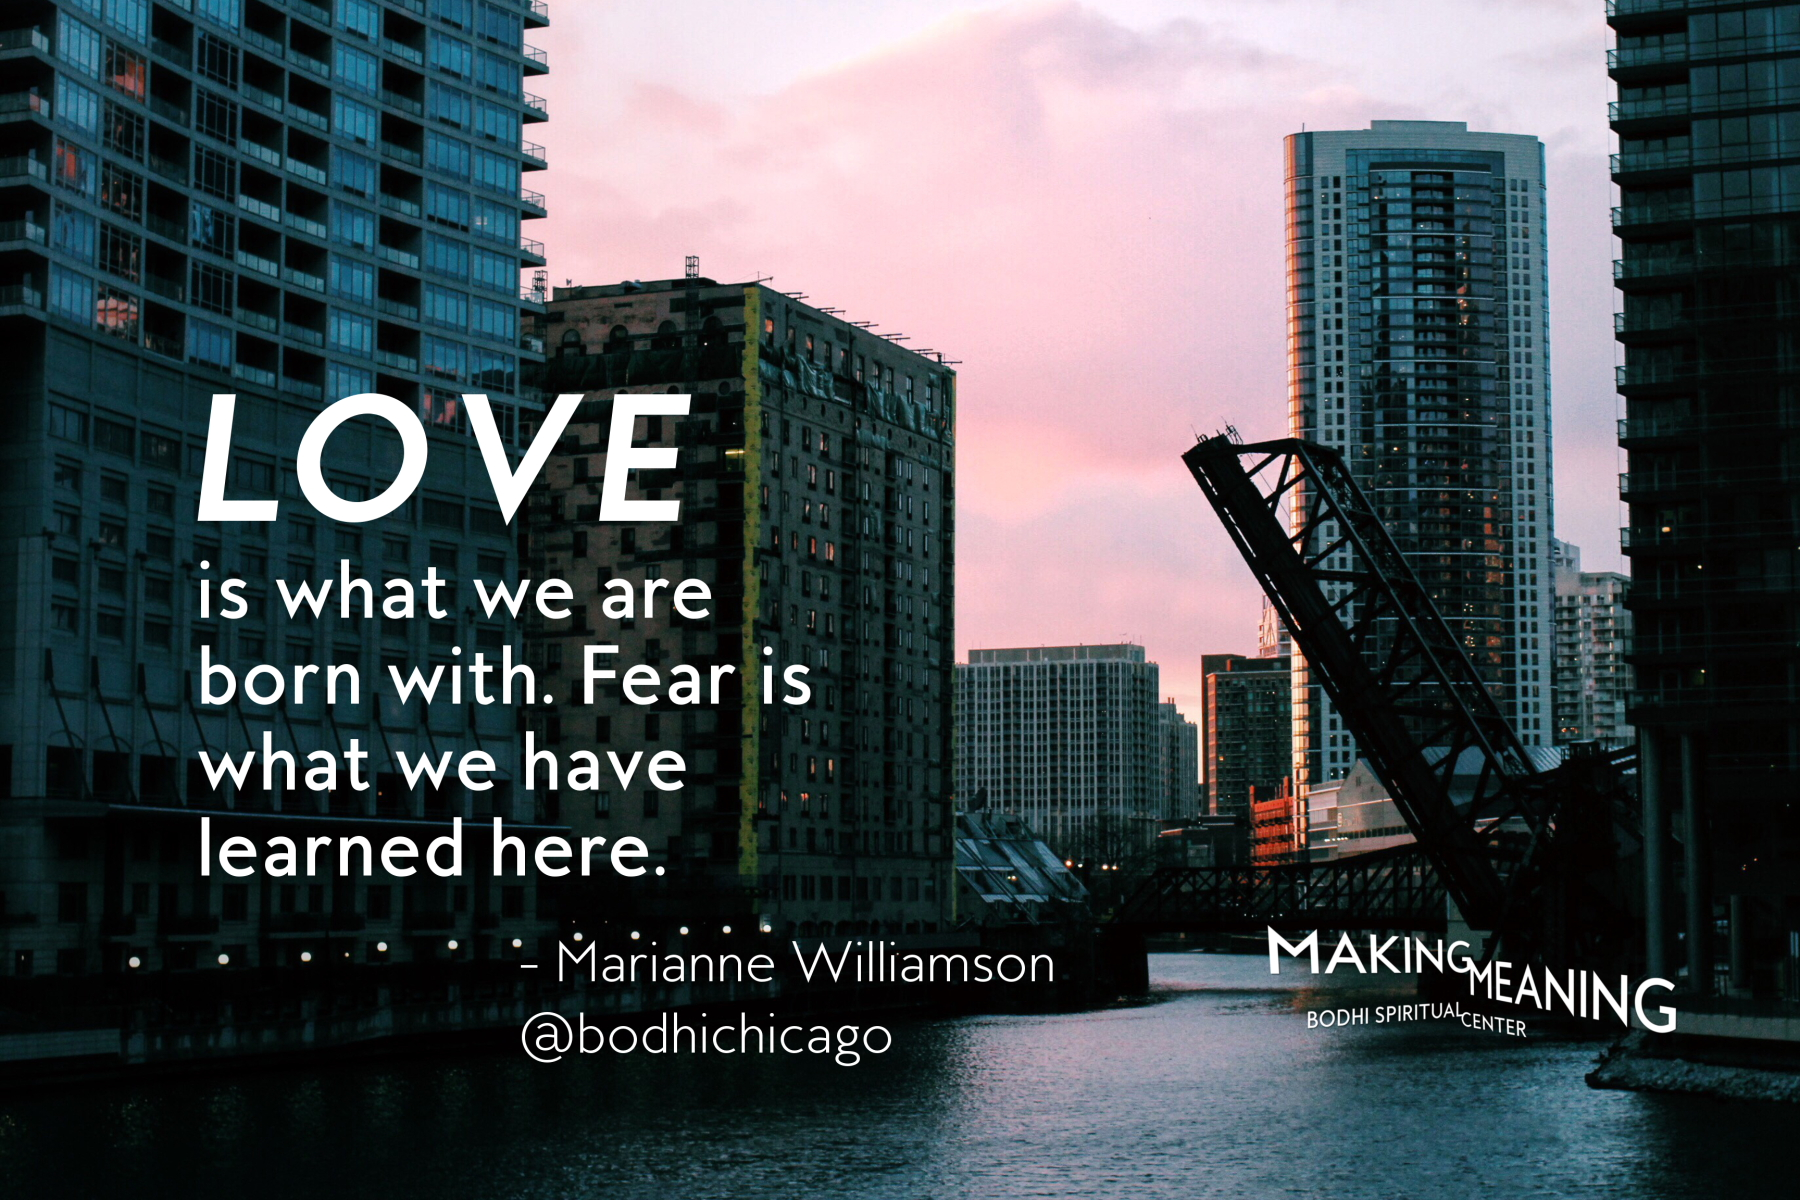 Marianne Williamson Love Quotes Wednesday Wisdom Quote Marianne Williamson On Love And Fear